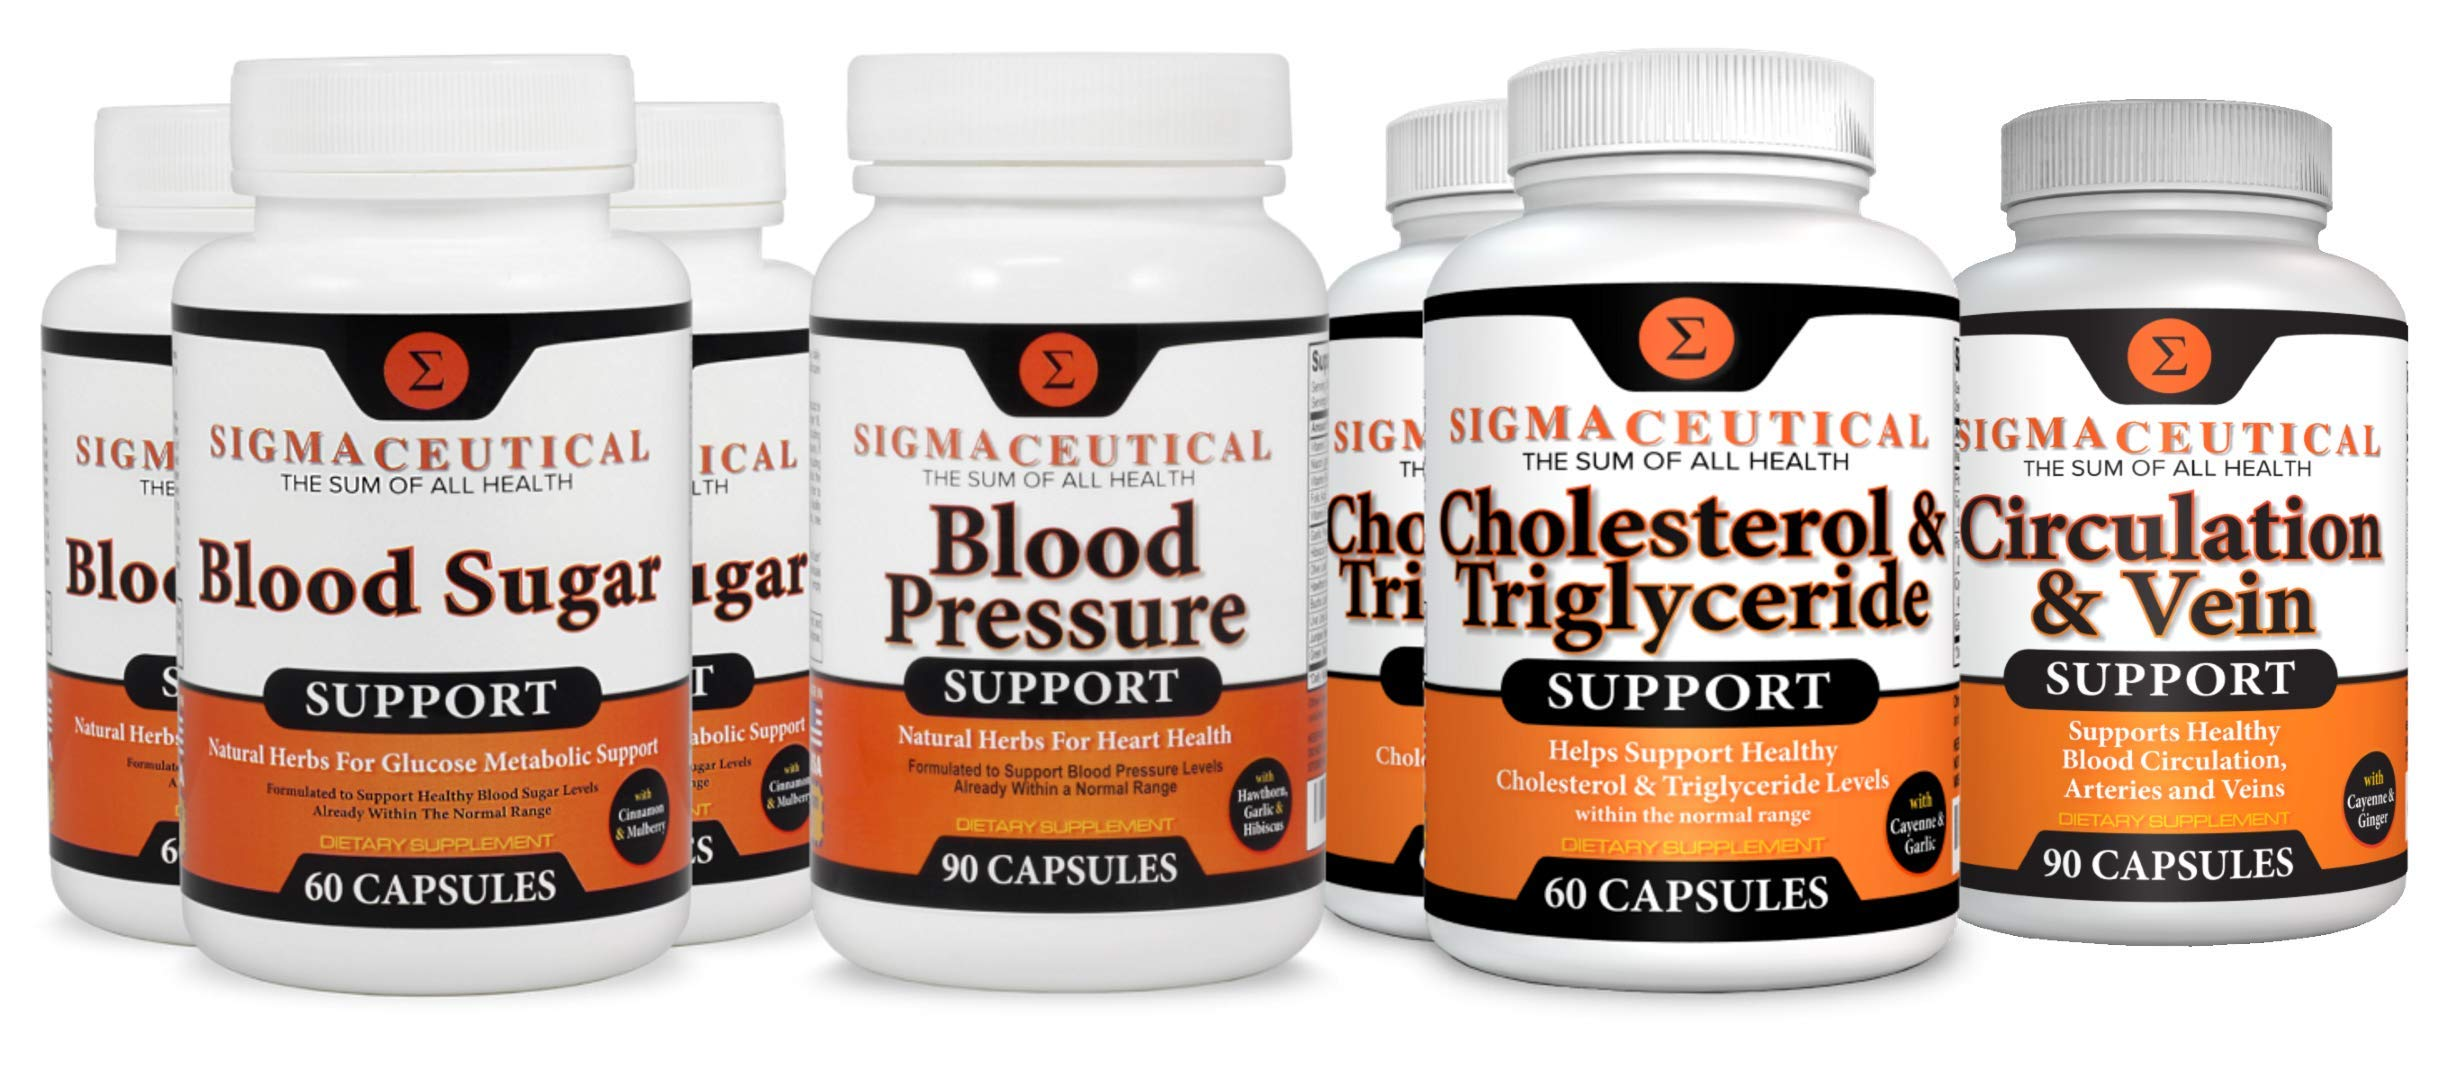 Metabolic Syndrome Supplements - Blood Pressure, Cholesterol & Blood Sugar Lowering Plus Circulation